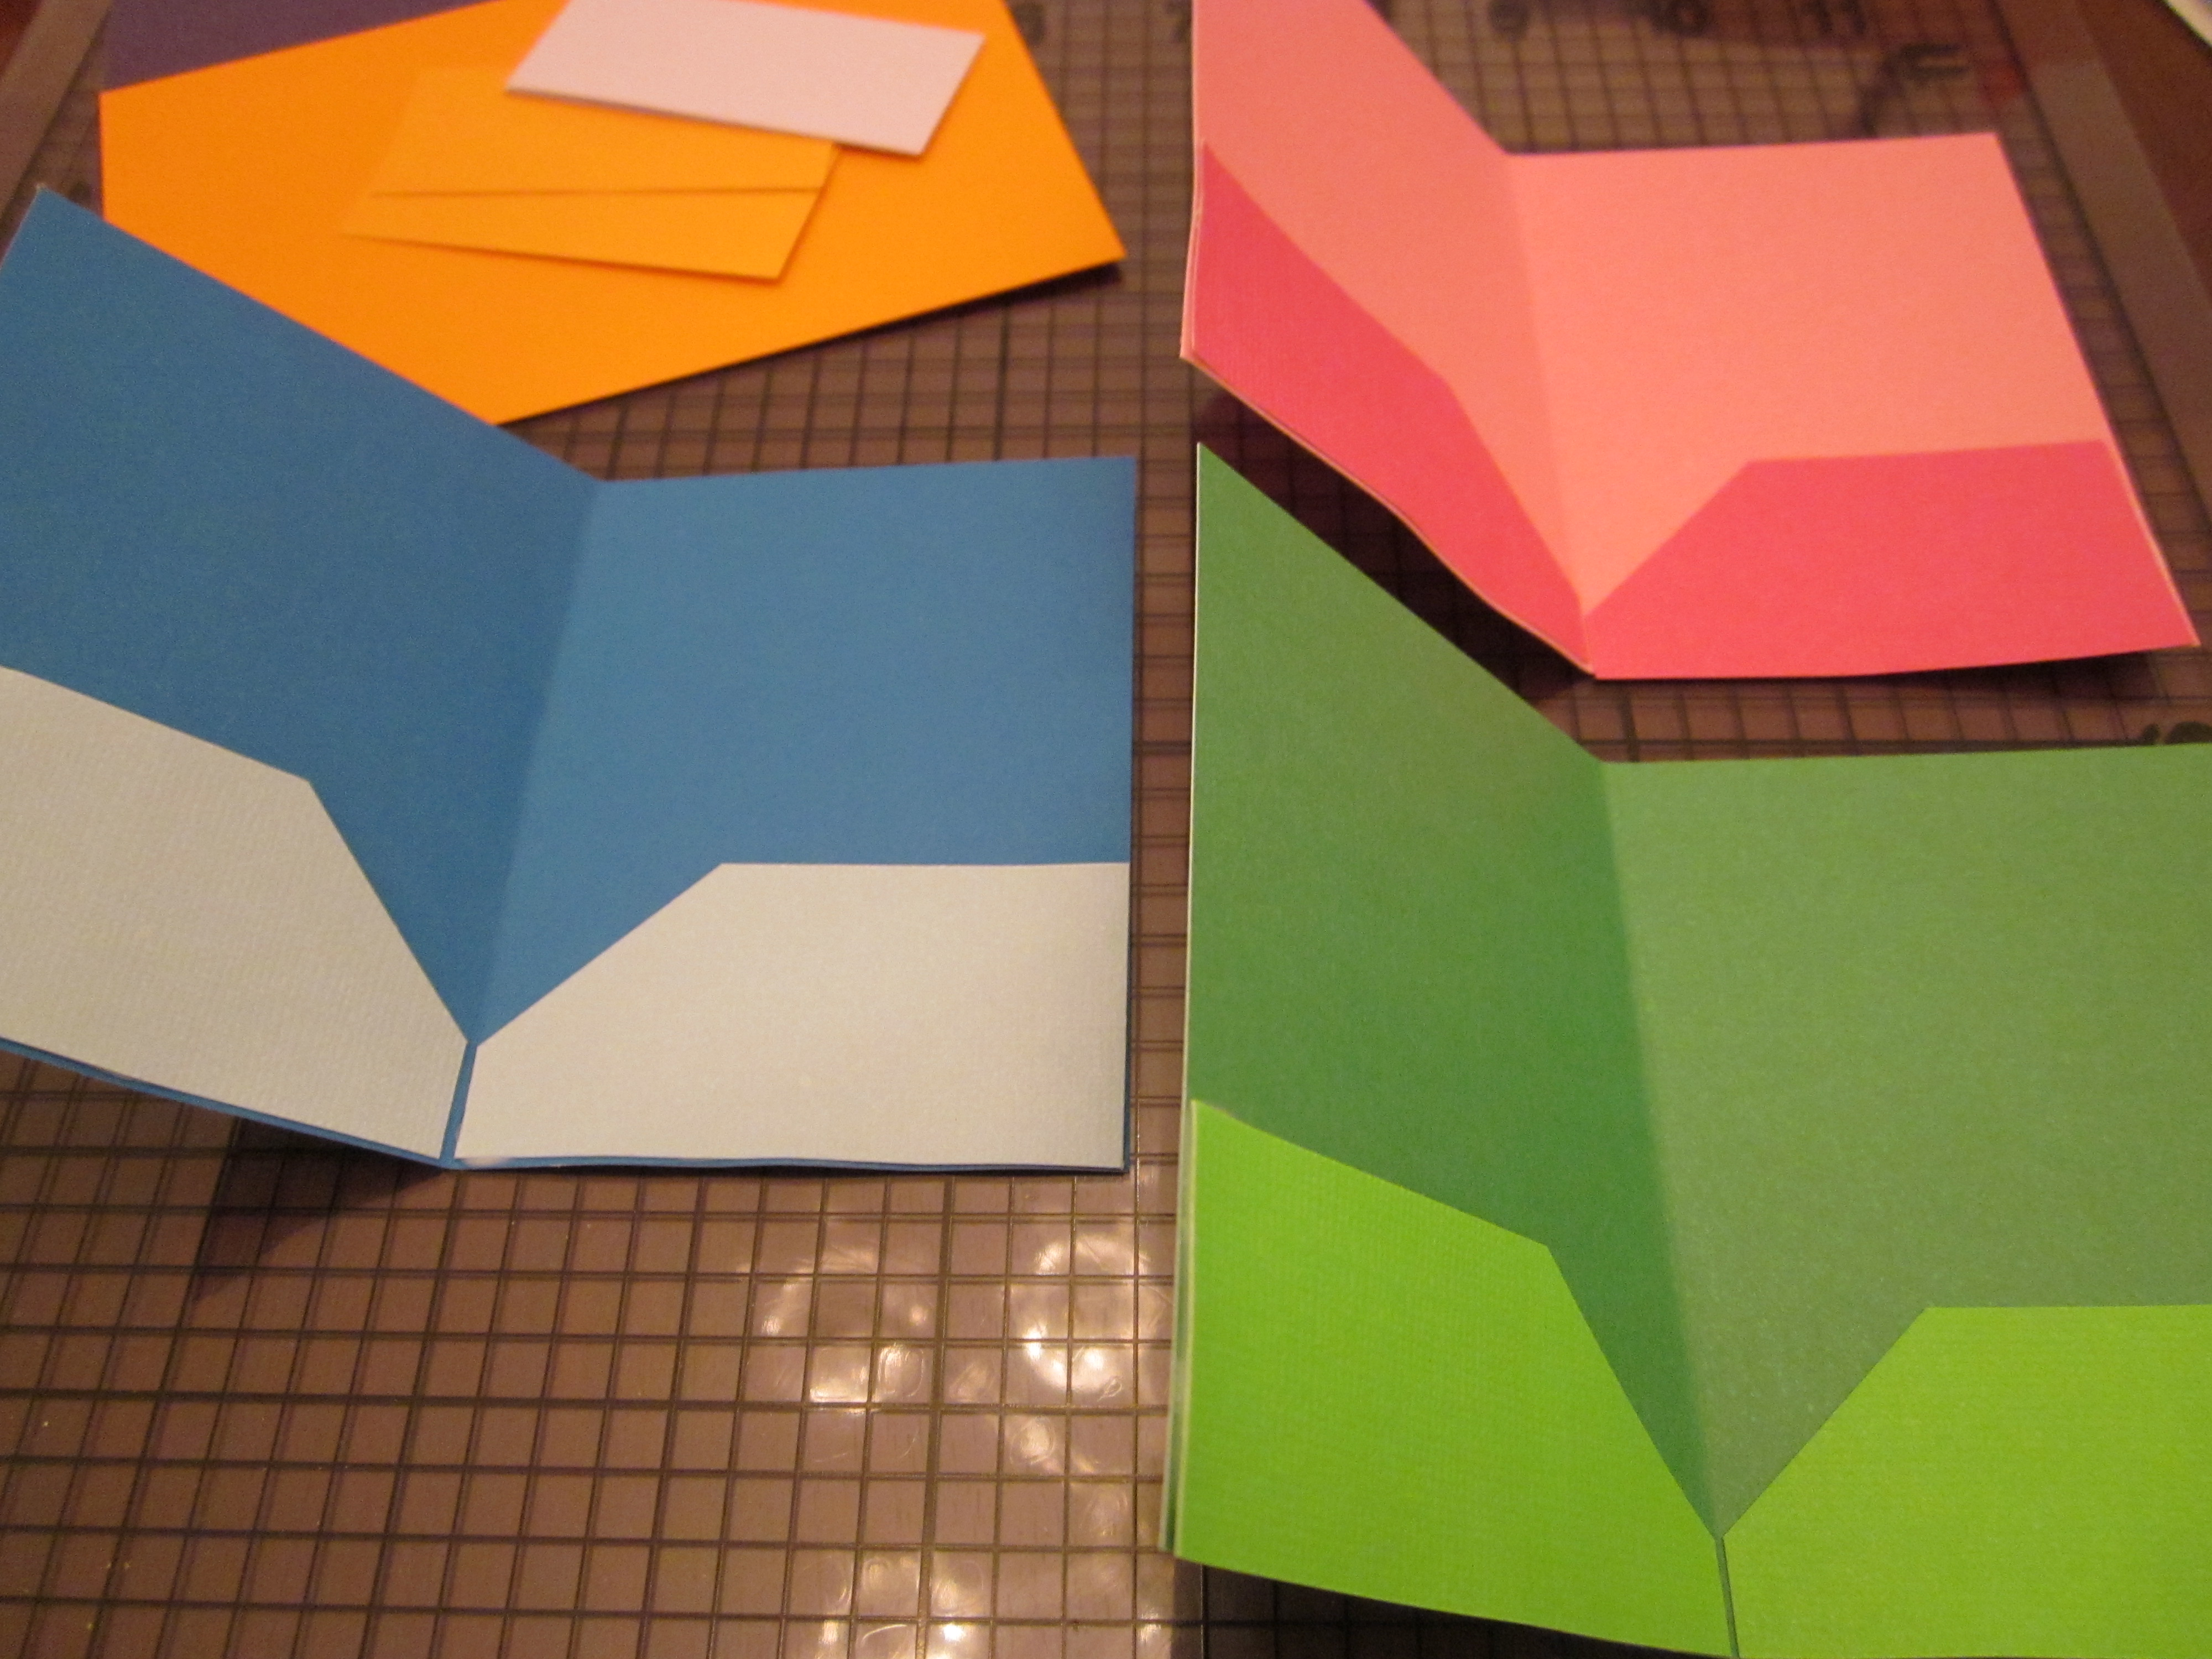 Creating the Folder. Fold the paper in half lengthwise. If using two letter-size sheets, cut a length of paper about 1 inch wide and 11 inches long. Glue the strip along the join between the two sheets. Once the glue is dry, fold the paper in half along the join. Cut two pieces of paper 5 .